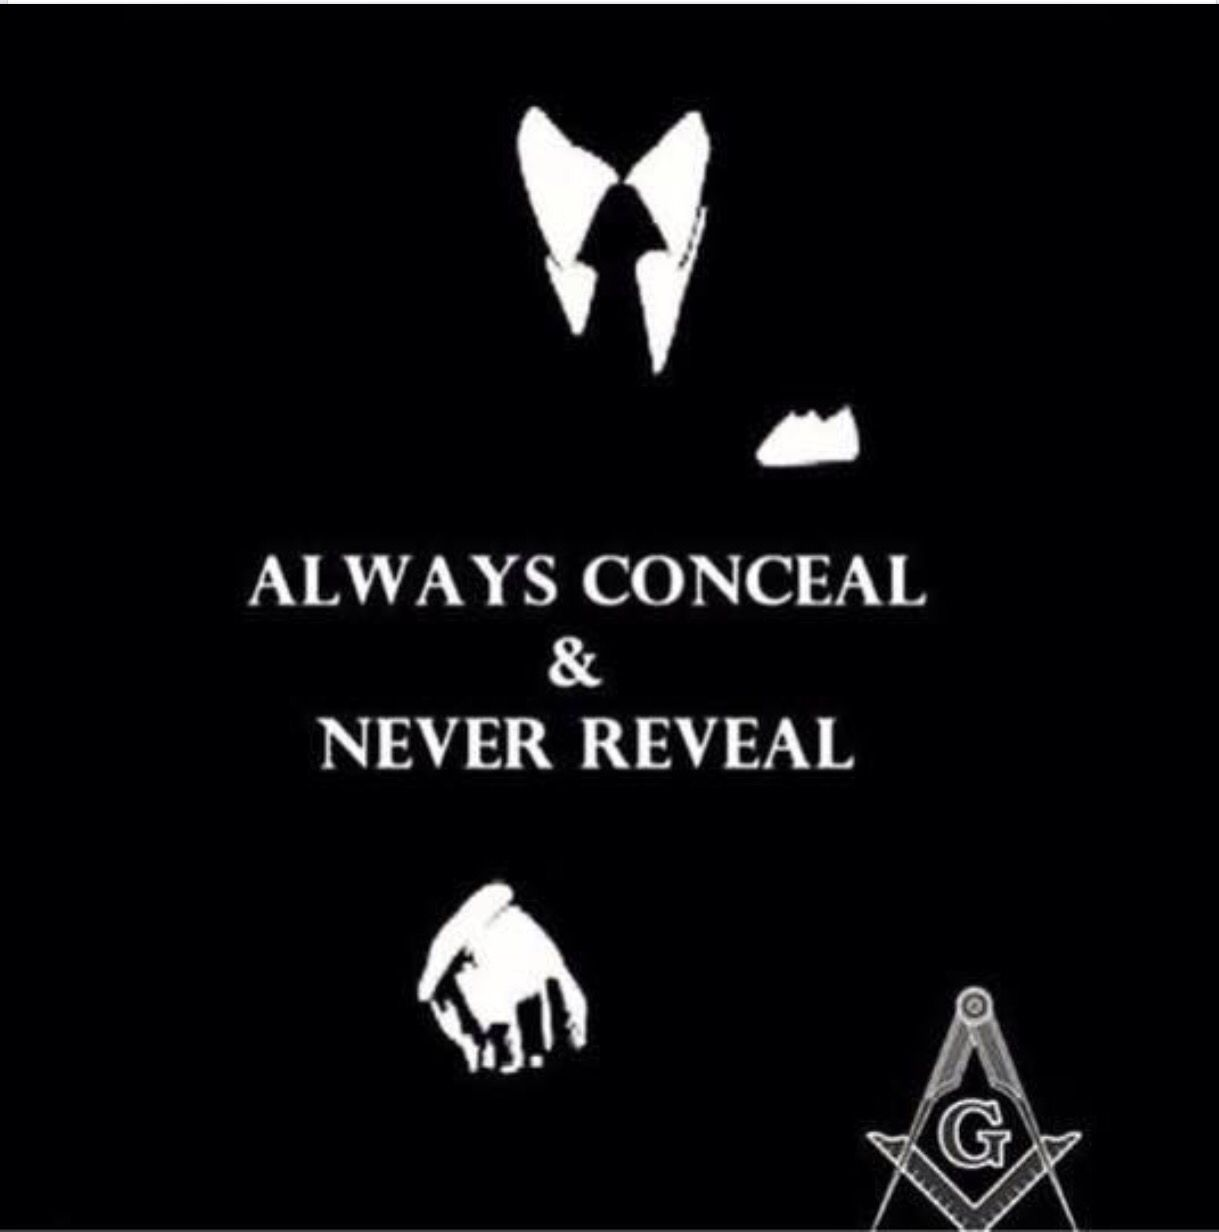 Obligations of the brotherhood the masons are the worlds oldest obligations of the brotherhood the masons are the worlds oldest organized crime network biocorpaavc Images